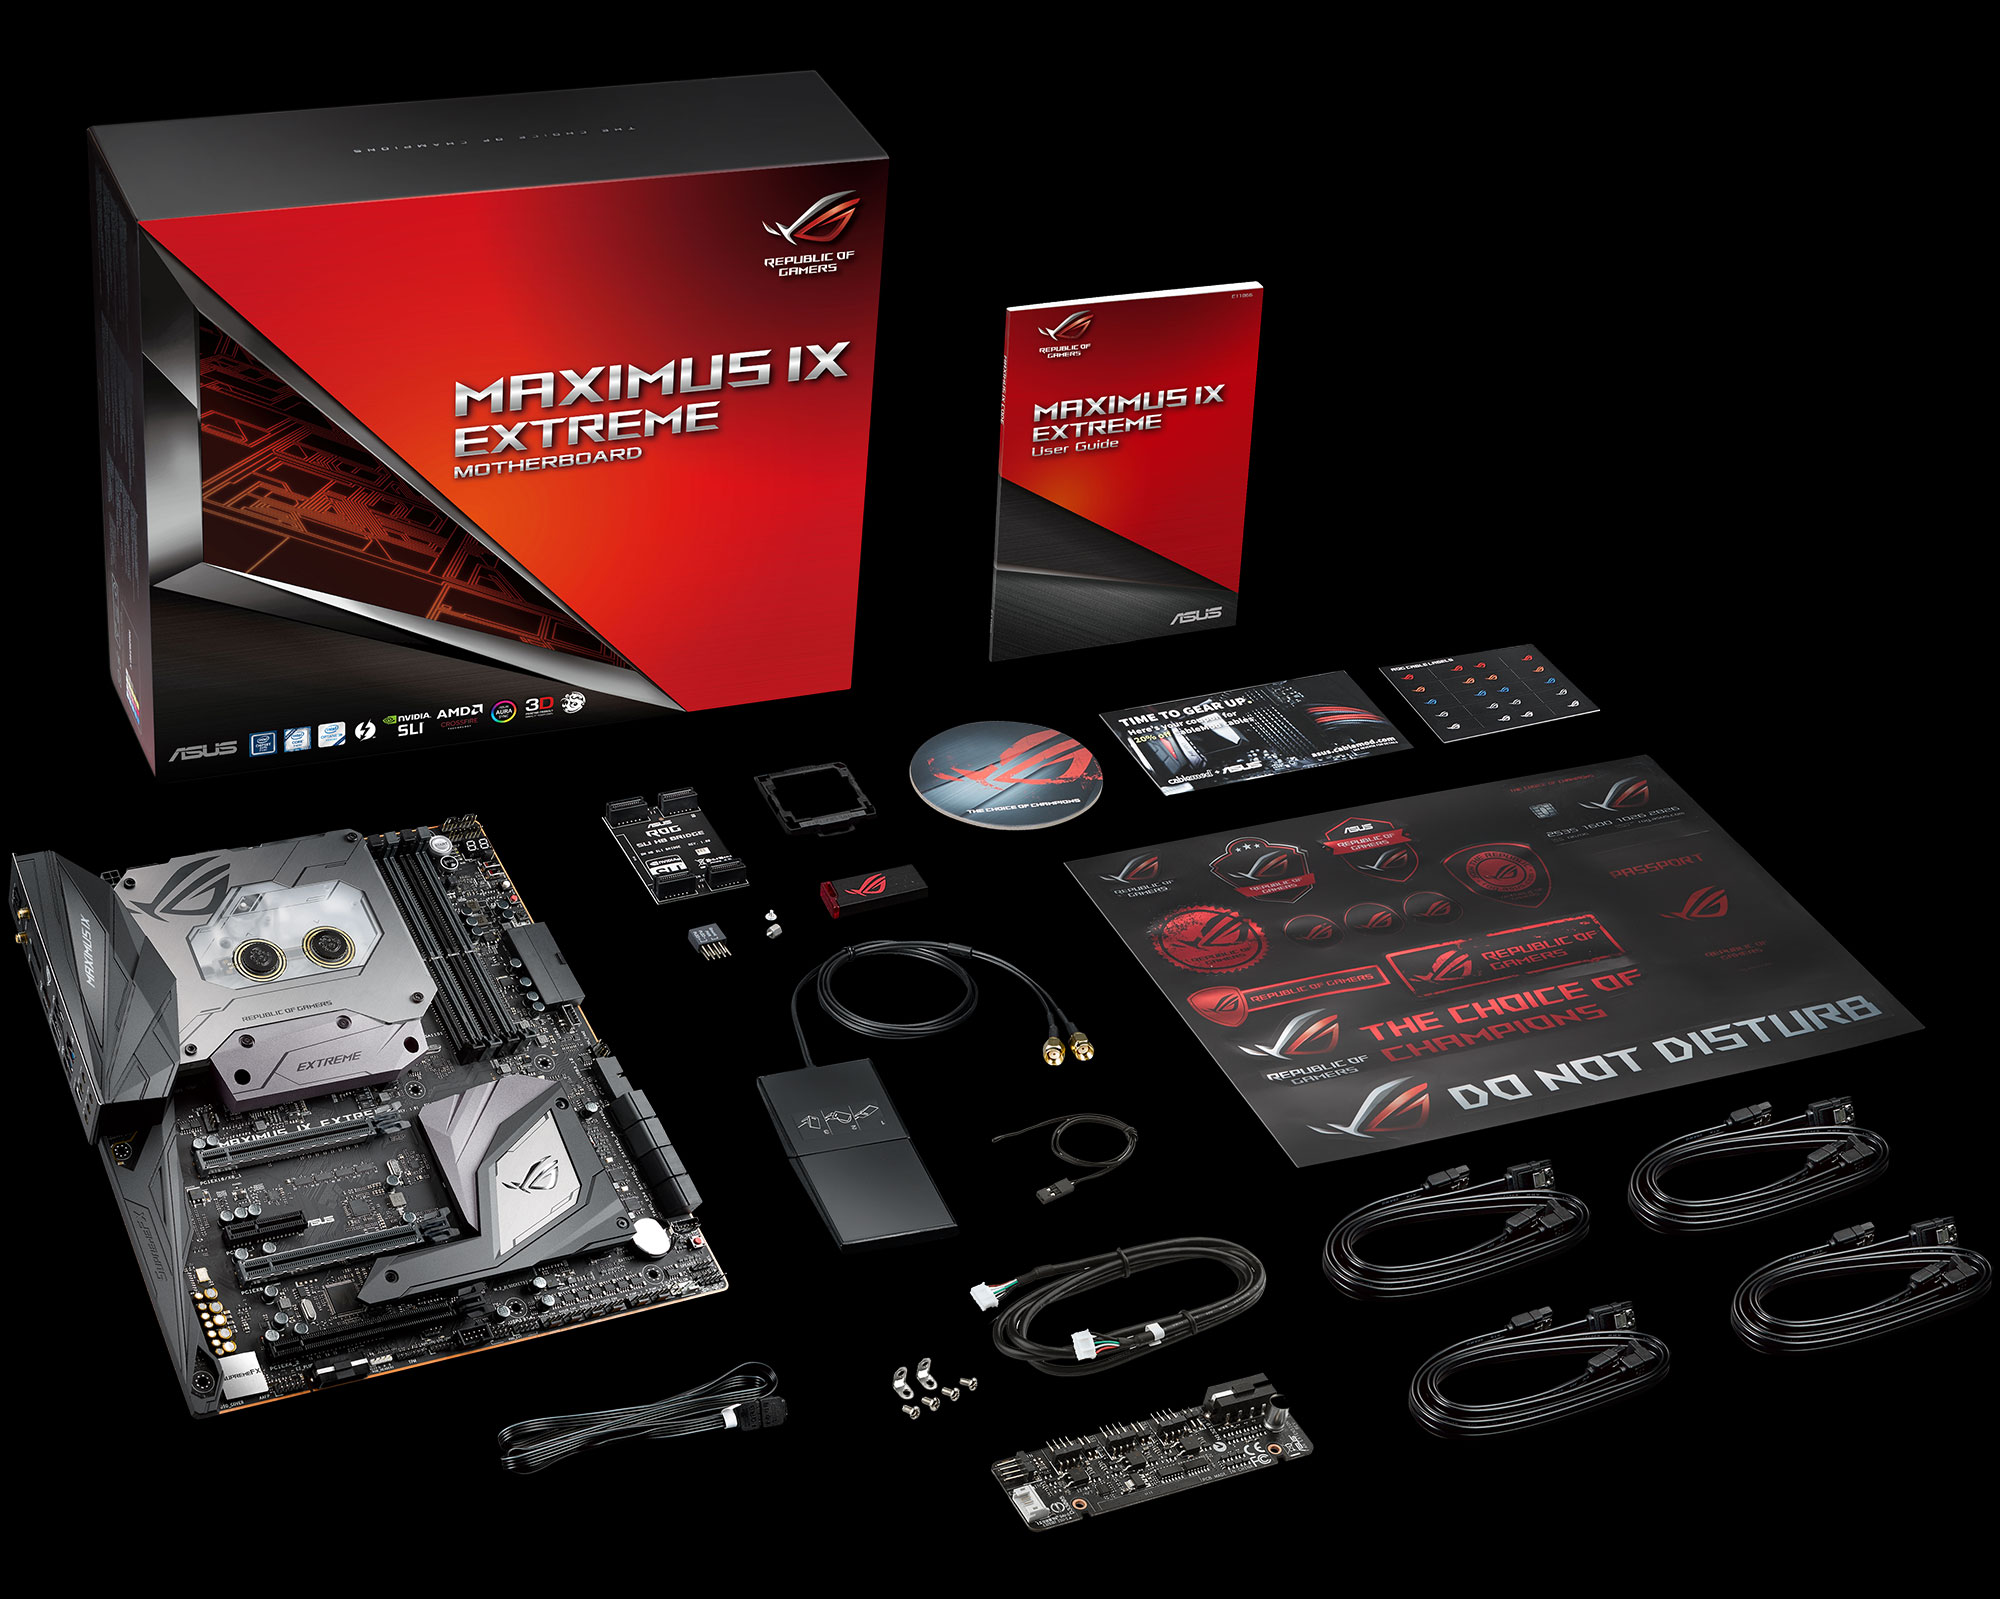 ROG-Maximus-IX-Extreme_Whats-in-the-box